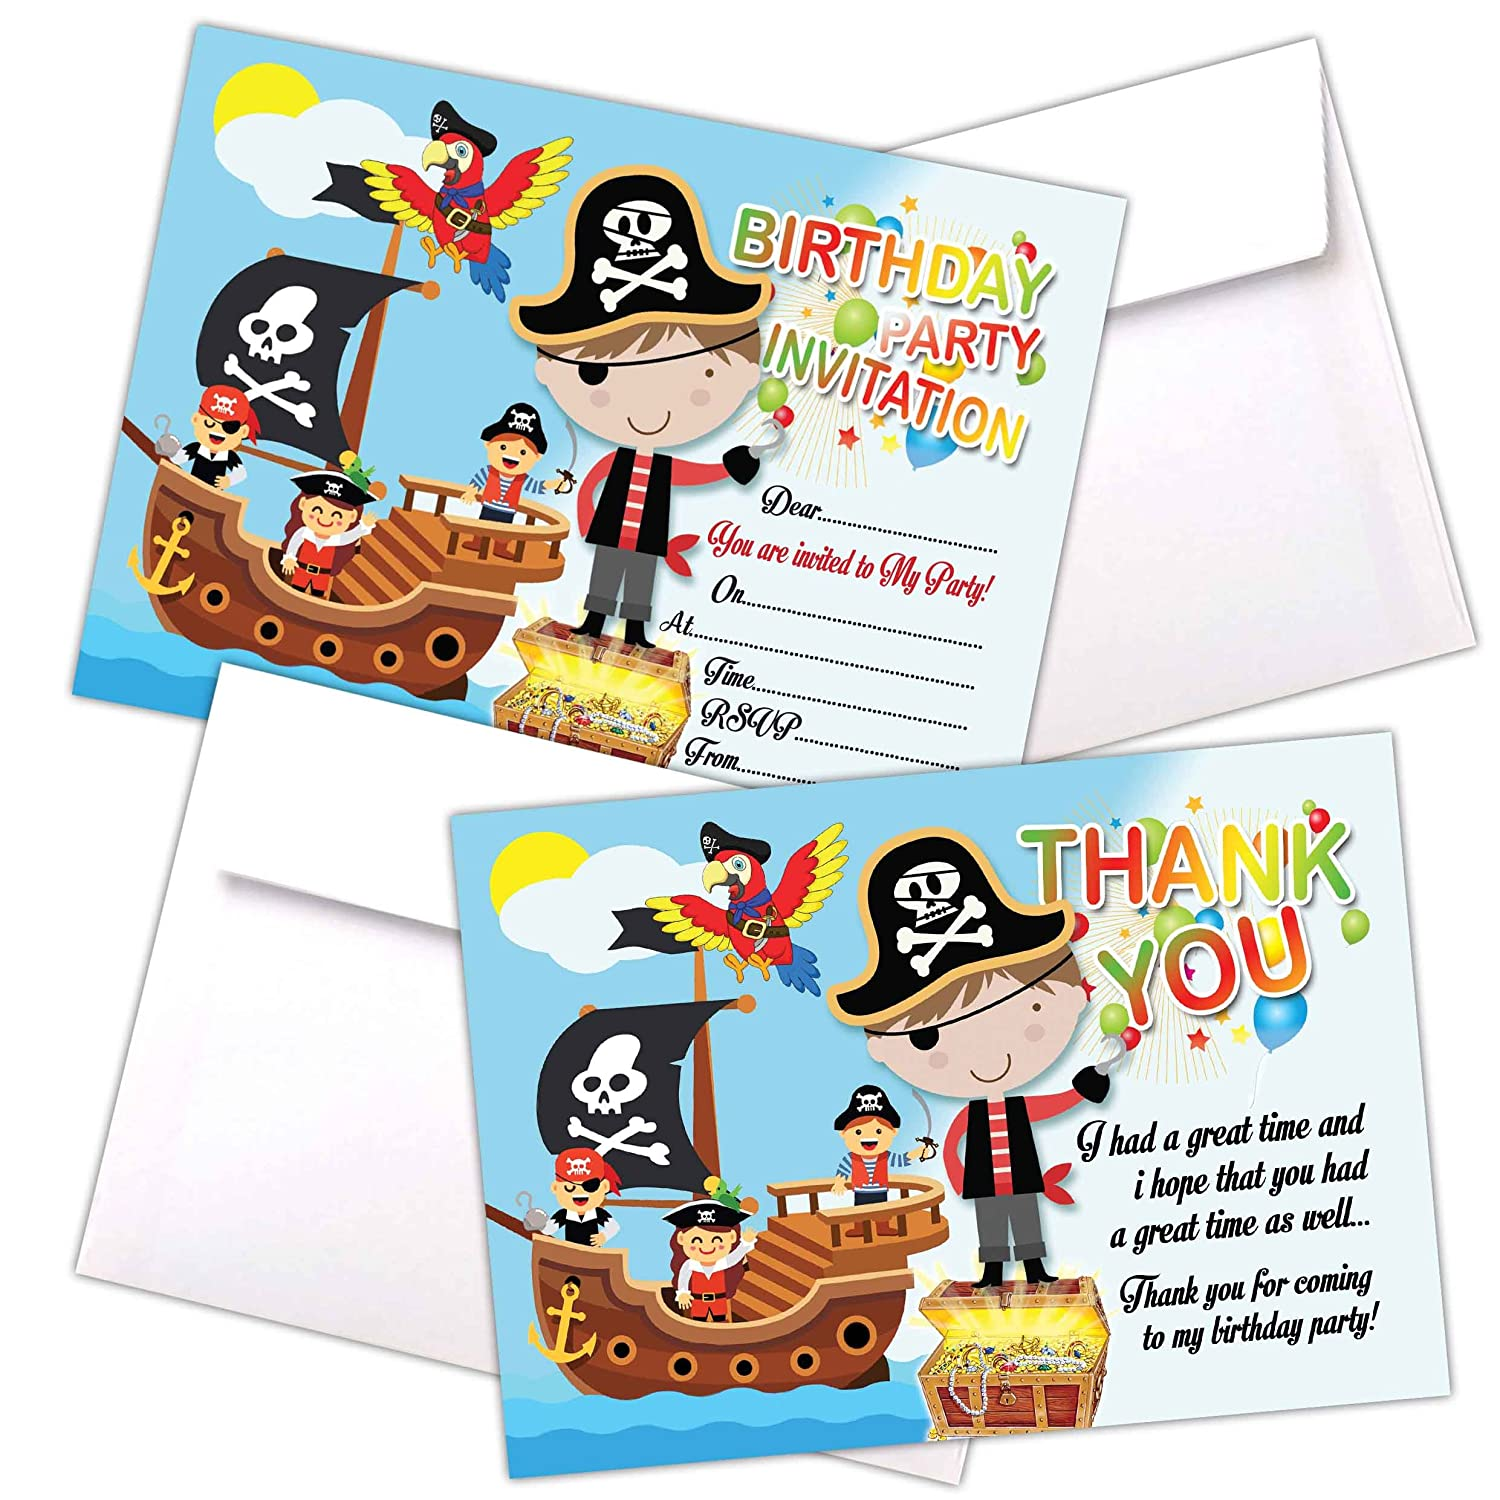 20 x Pirates   Boys Kids Birthday Party Invitations   Invites Cards   Boys Children Party Cards   with C6 Envelopes Option   With Thank You Cards Option (Only Invites) Eli Belinde